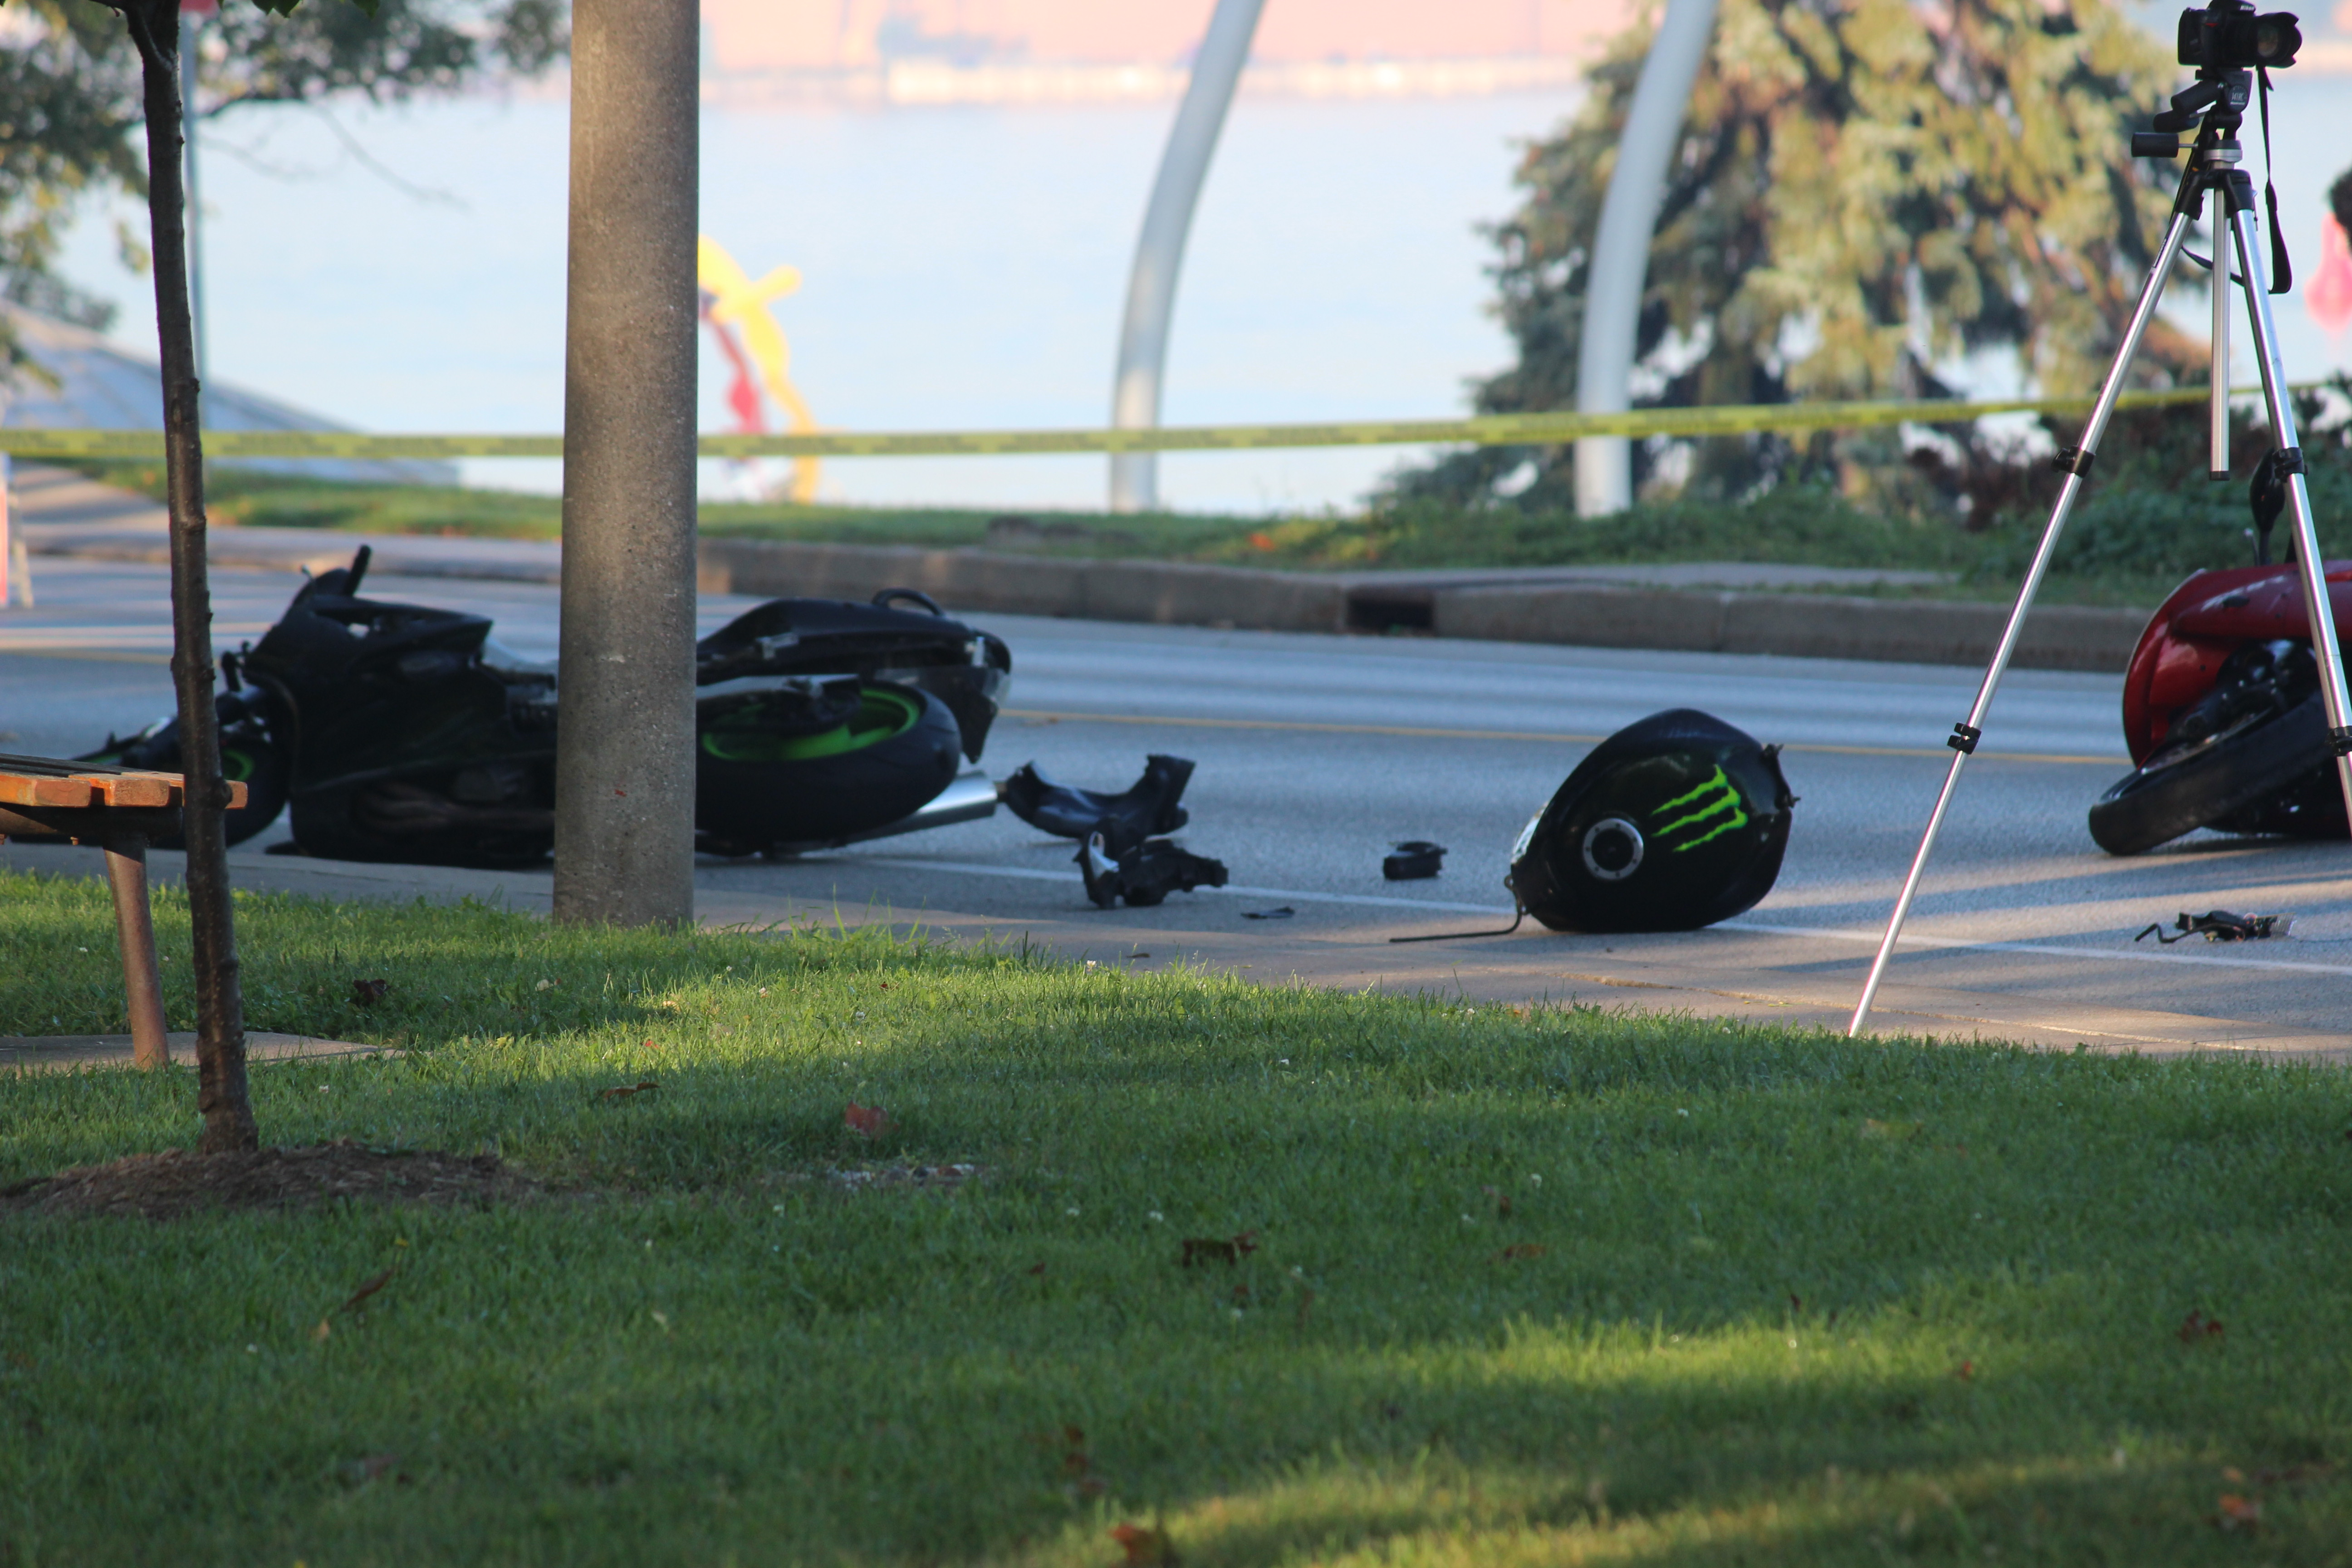 A two-motorcycle crash on Riverside Dr. W September 23, 2015. (Photo by Adelle Loiselle)